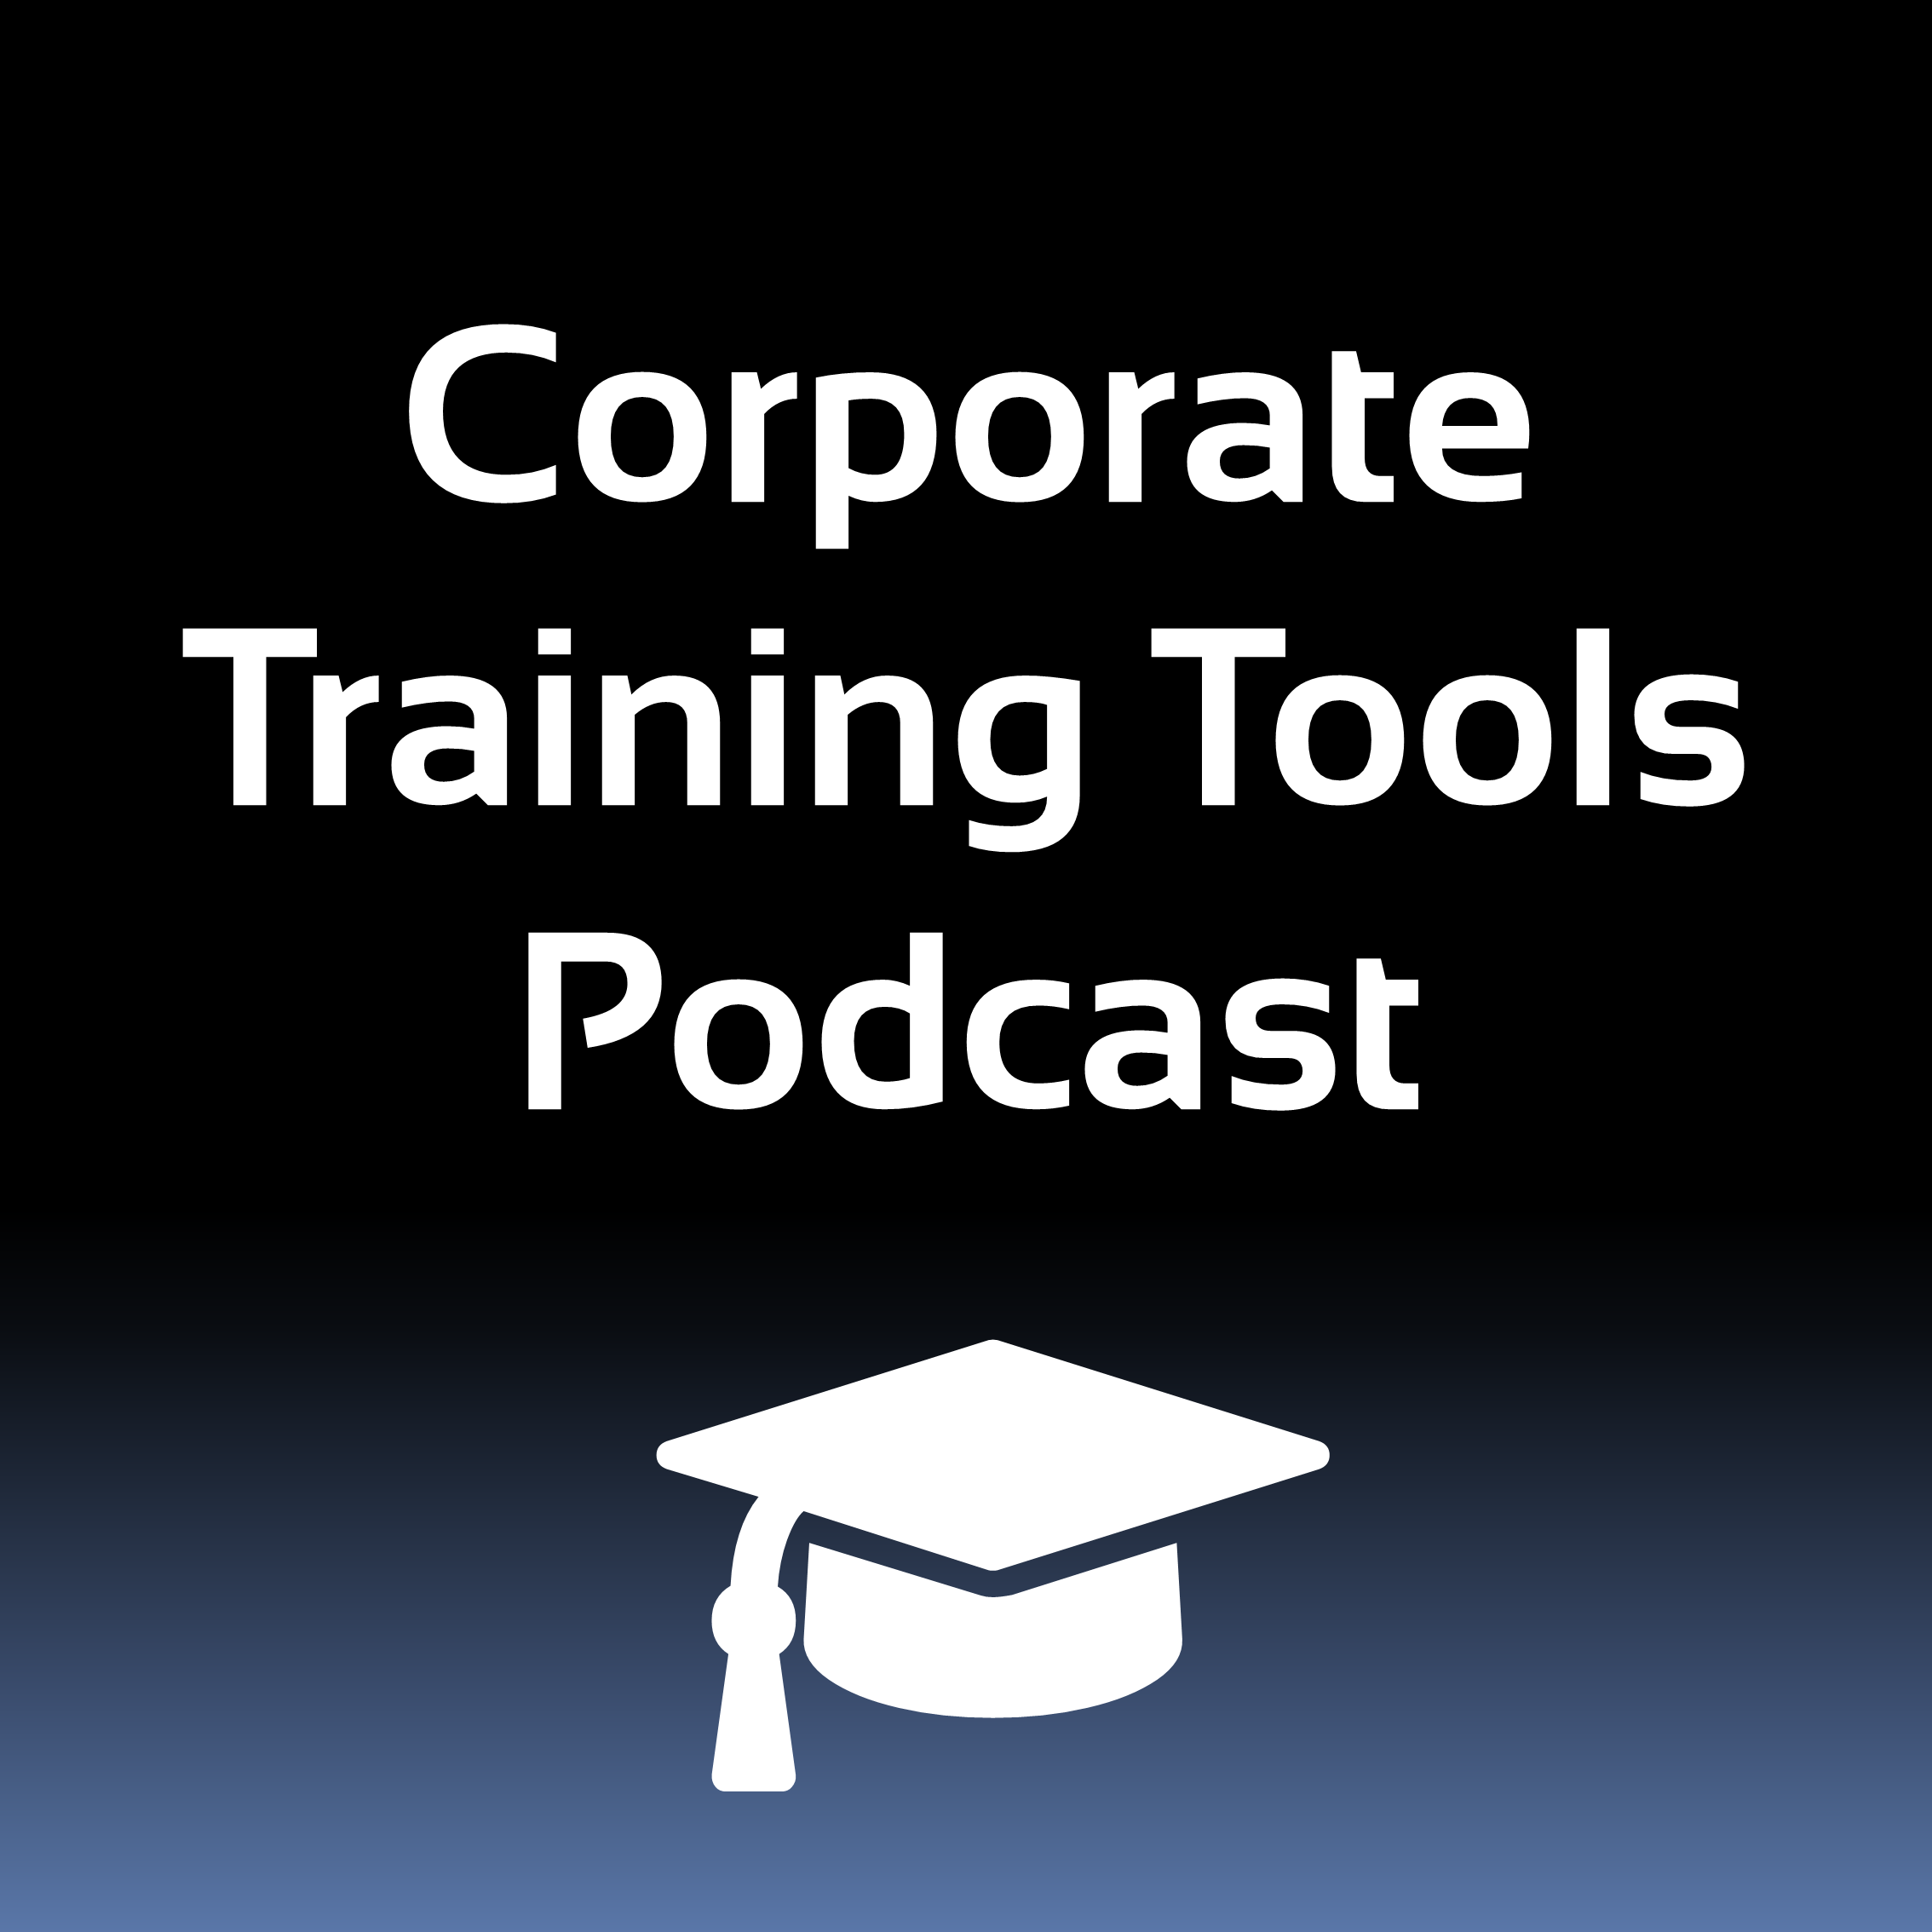 Corporate Training Tools Podcast show art